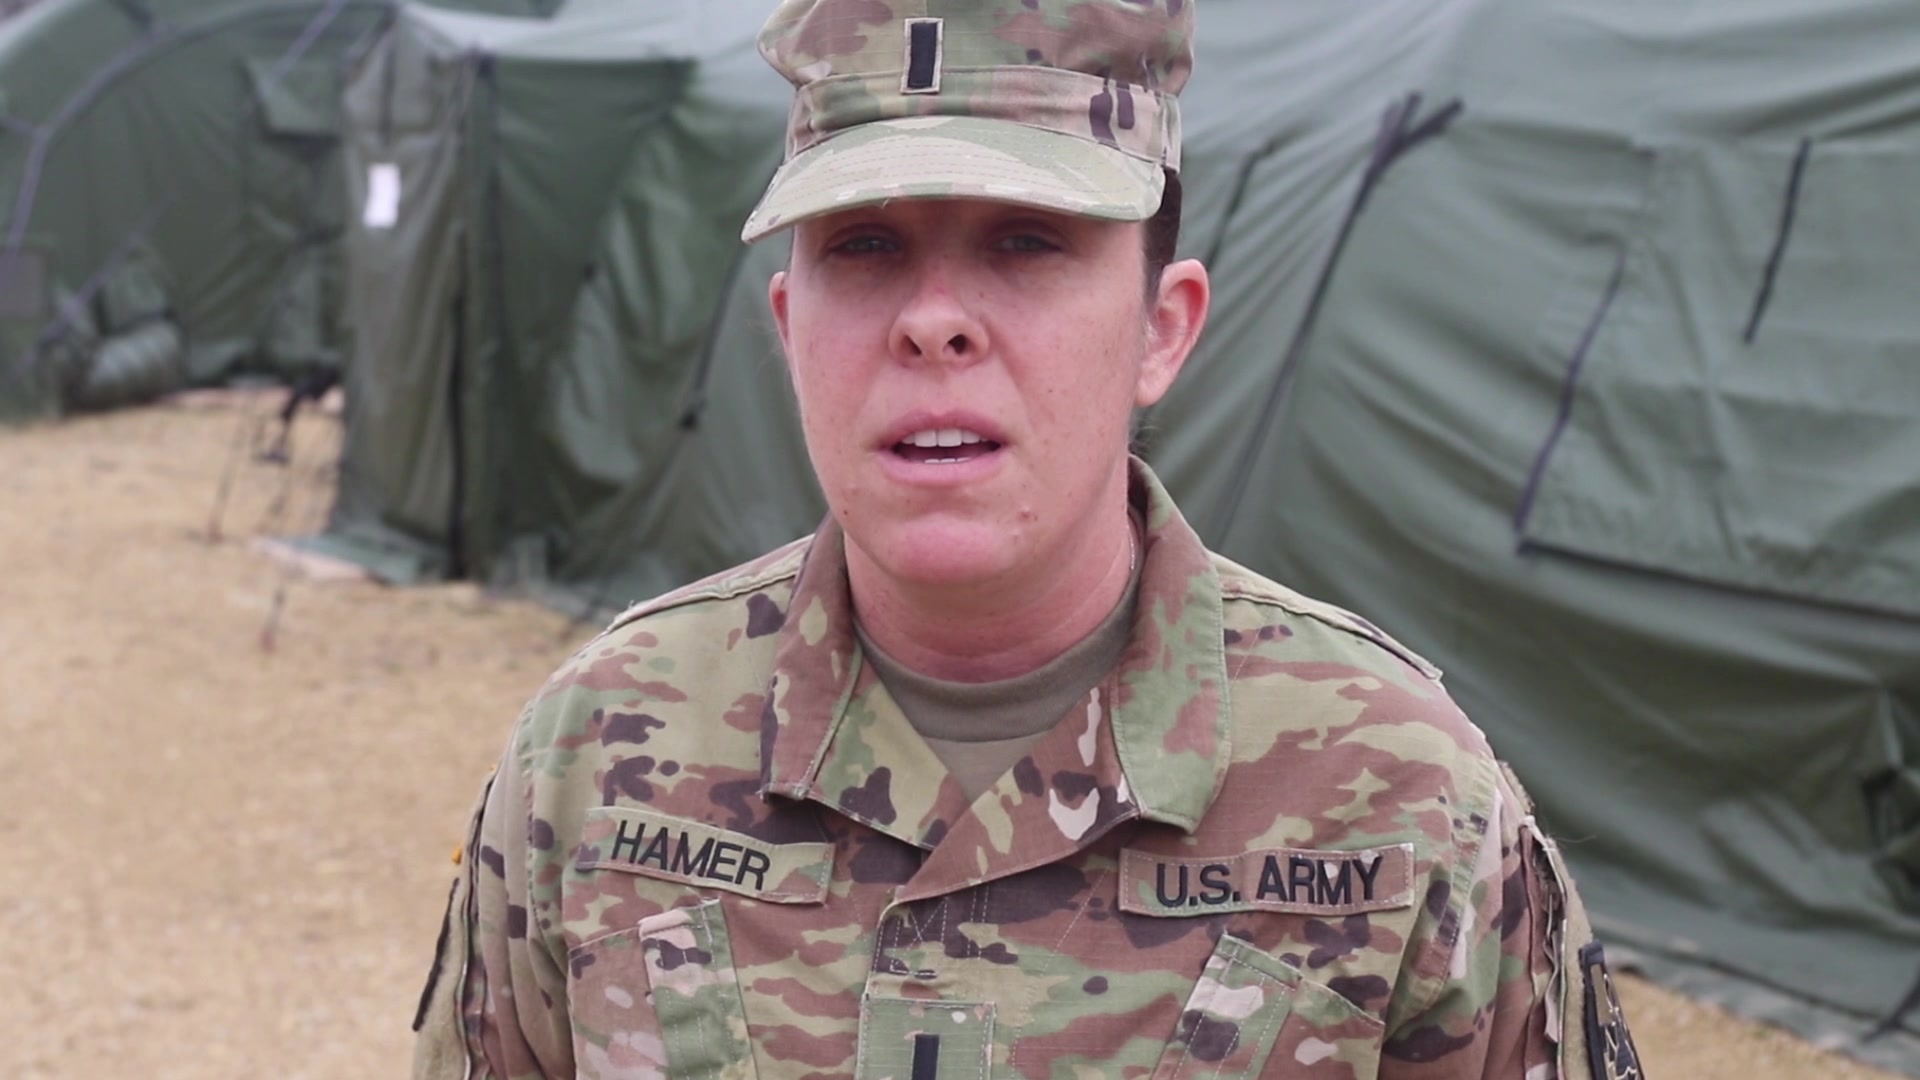 1st Lt. Danielle Hamer, medical-surgical nurse, 311th Field Hospital, shares what it's like to be a U.S. Army Reserve Soldier.